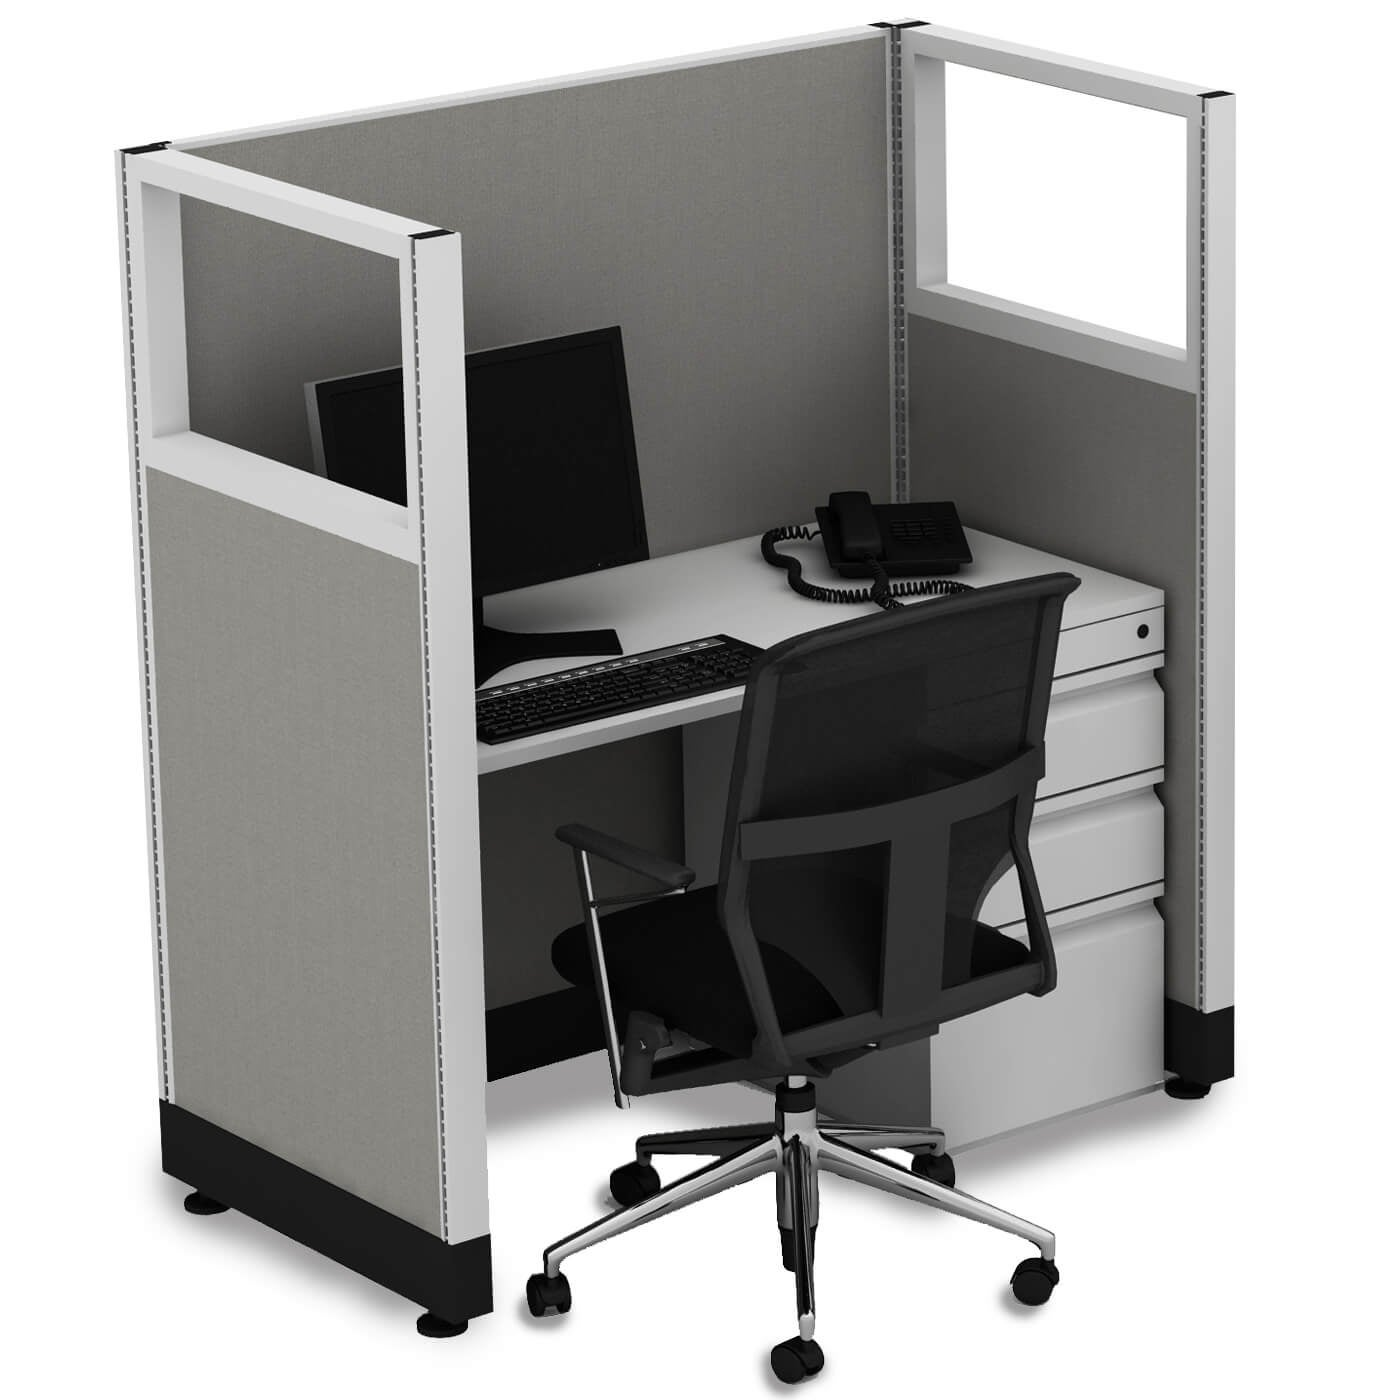 Cubicle Workstations 53H Powered (3x4 - Espresso Desk Silver Paint - Assembled)